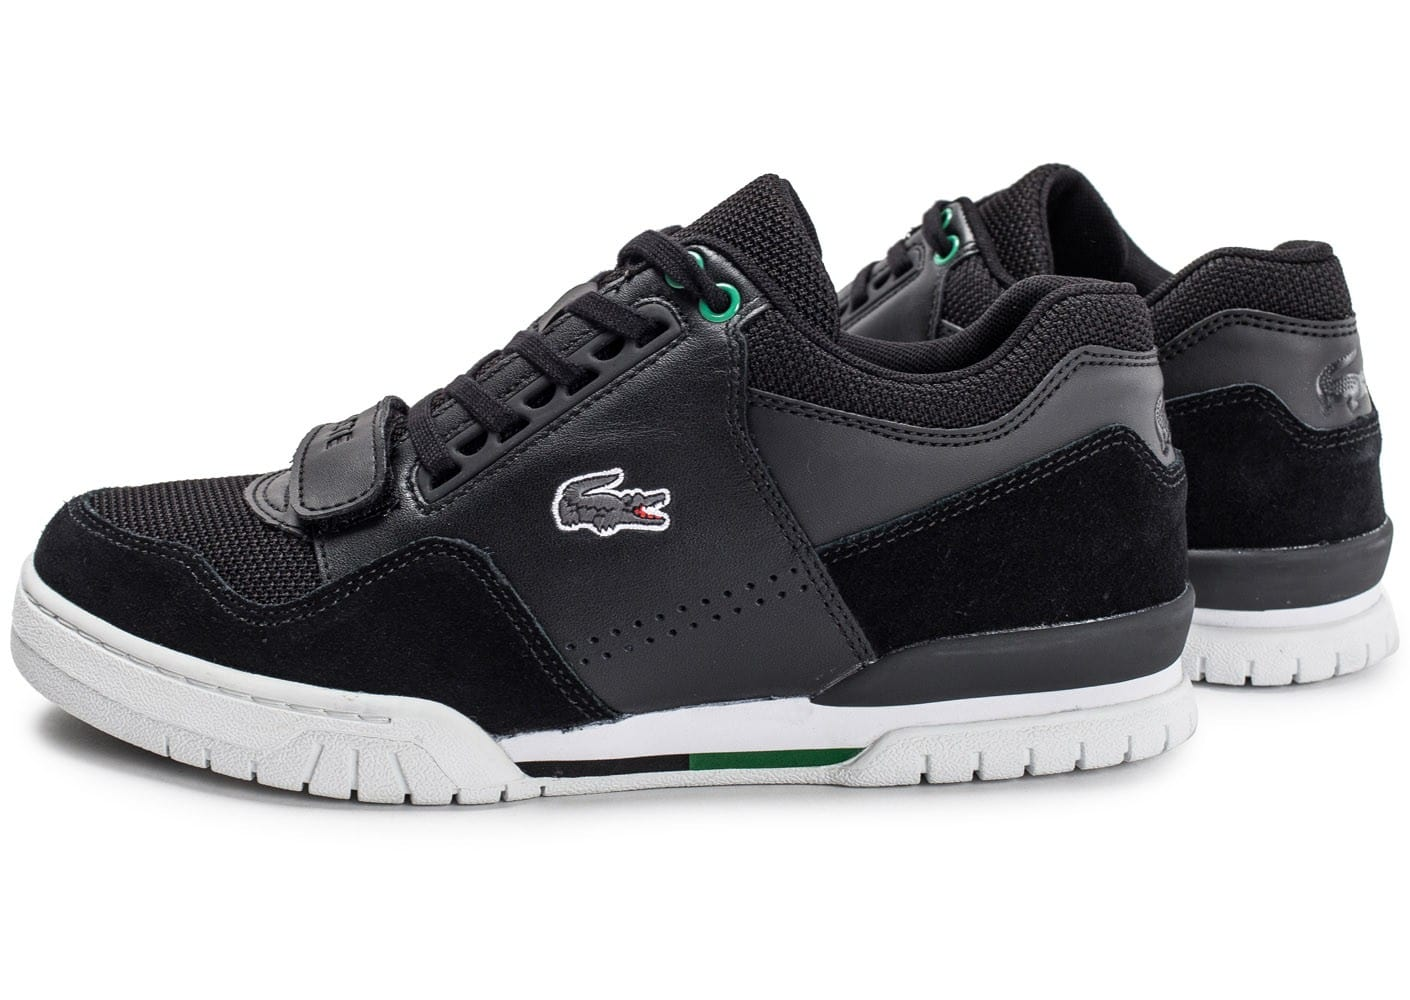 Lacoste Chaussures Angha Lacoste soldes Chaussures Under Armour Micro G grises homme Lacoste Chaussures Angha Lacoste soldes Chaussures Under Armour homme Gp9W2